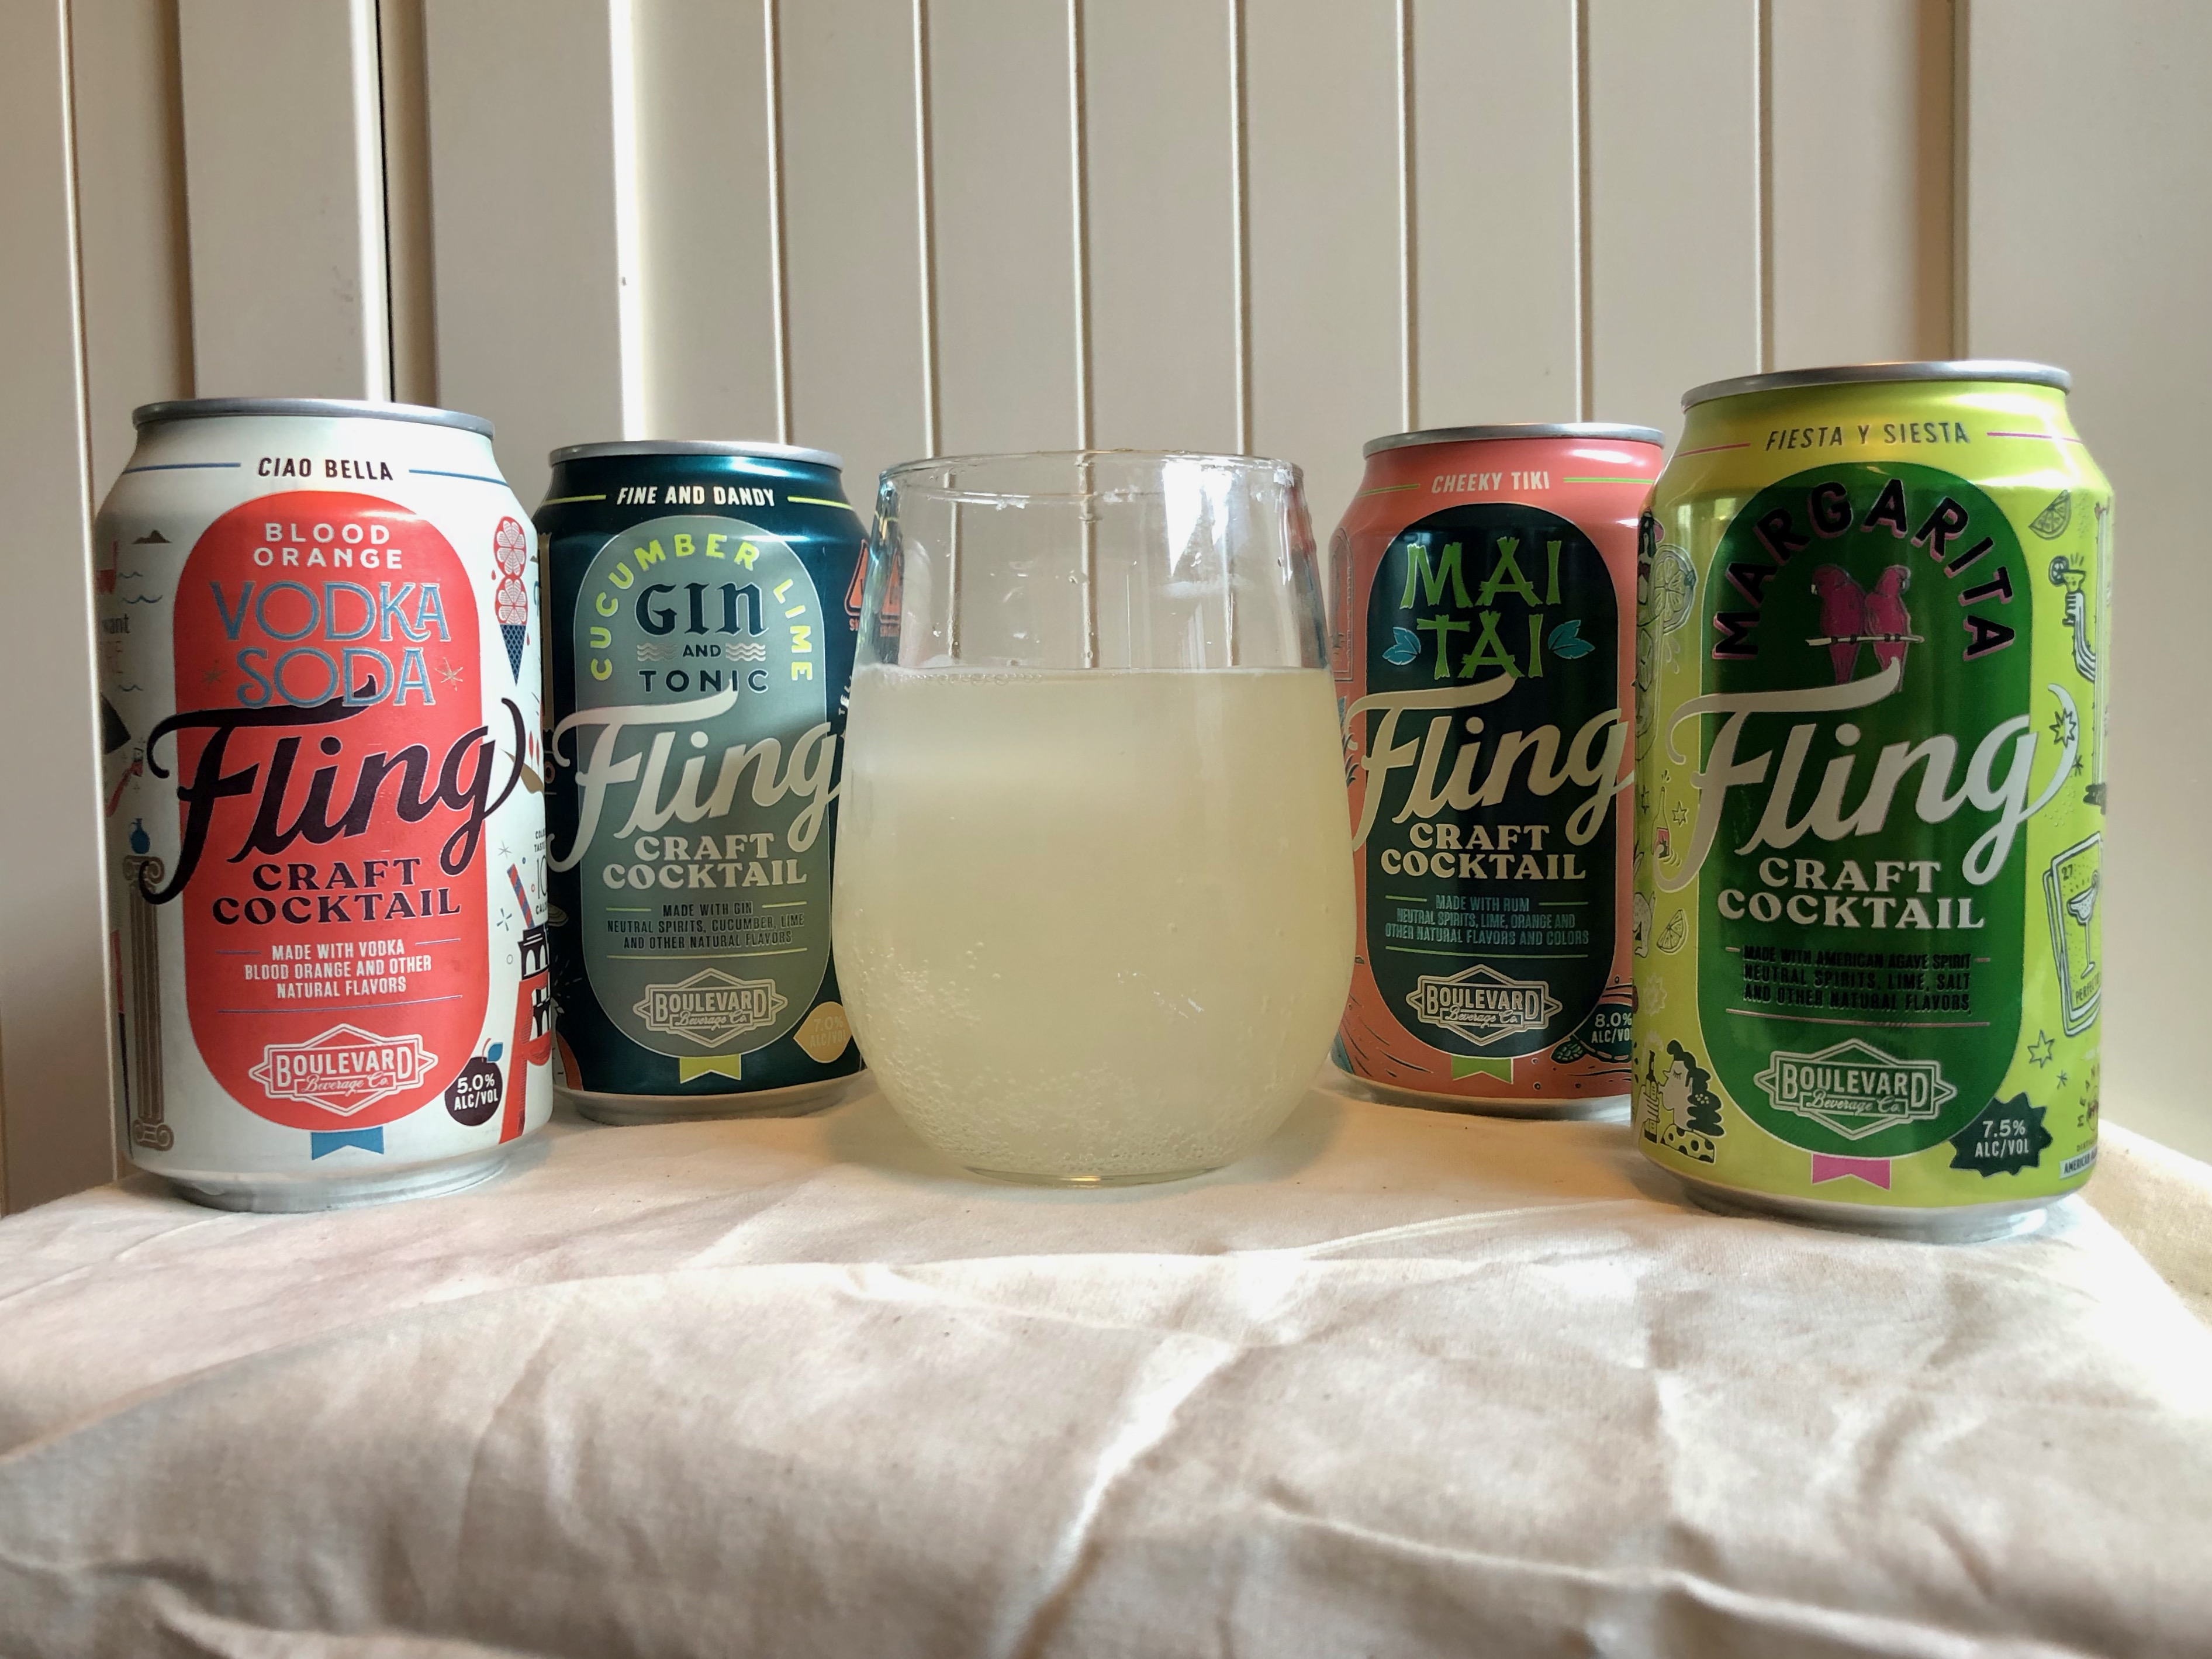 Celebrated Cinco de Mayo with a Margarita from Fling Craft Cocktail.